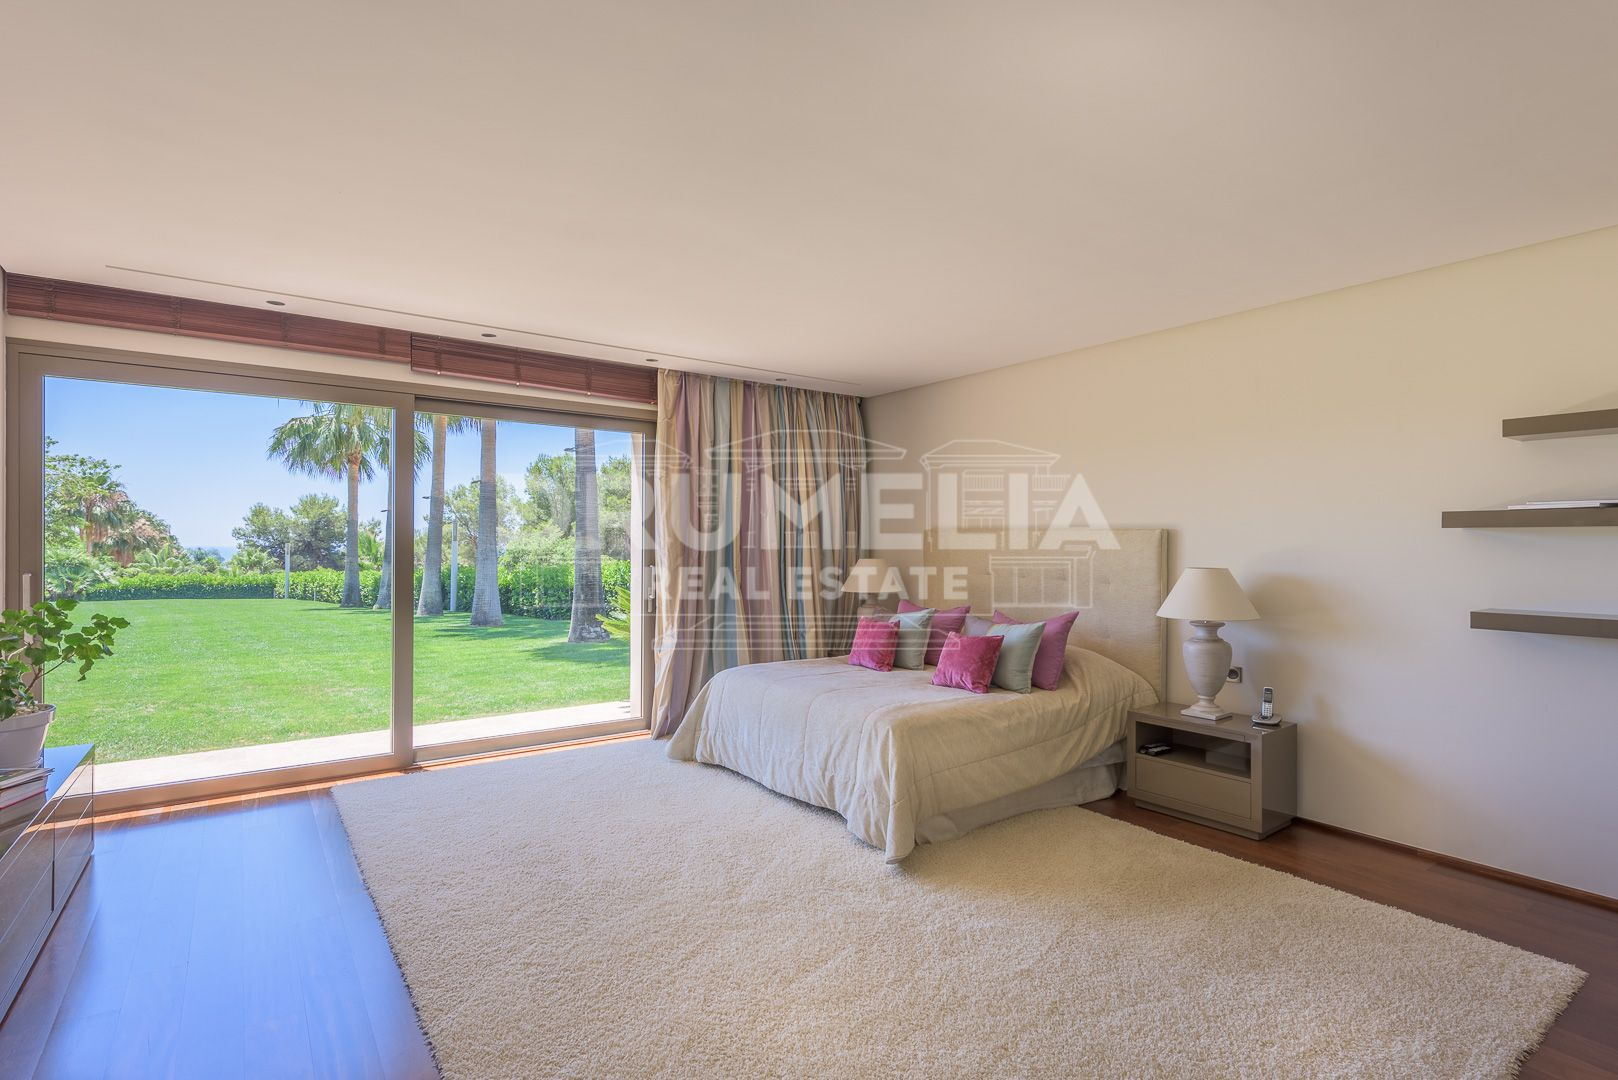 Marbella Golden Mile, Astonishing Villa in Quinta de Sierra Blanca, Marbella Golden Mile